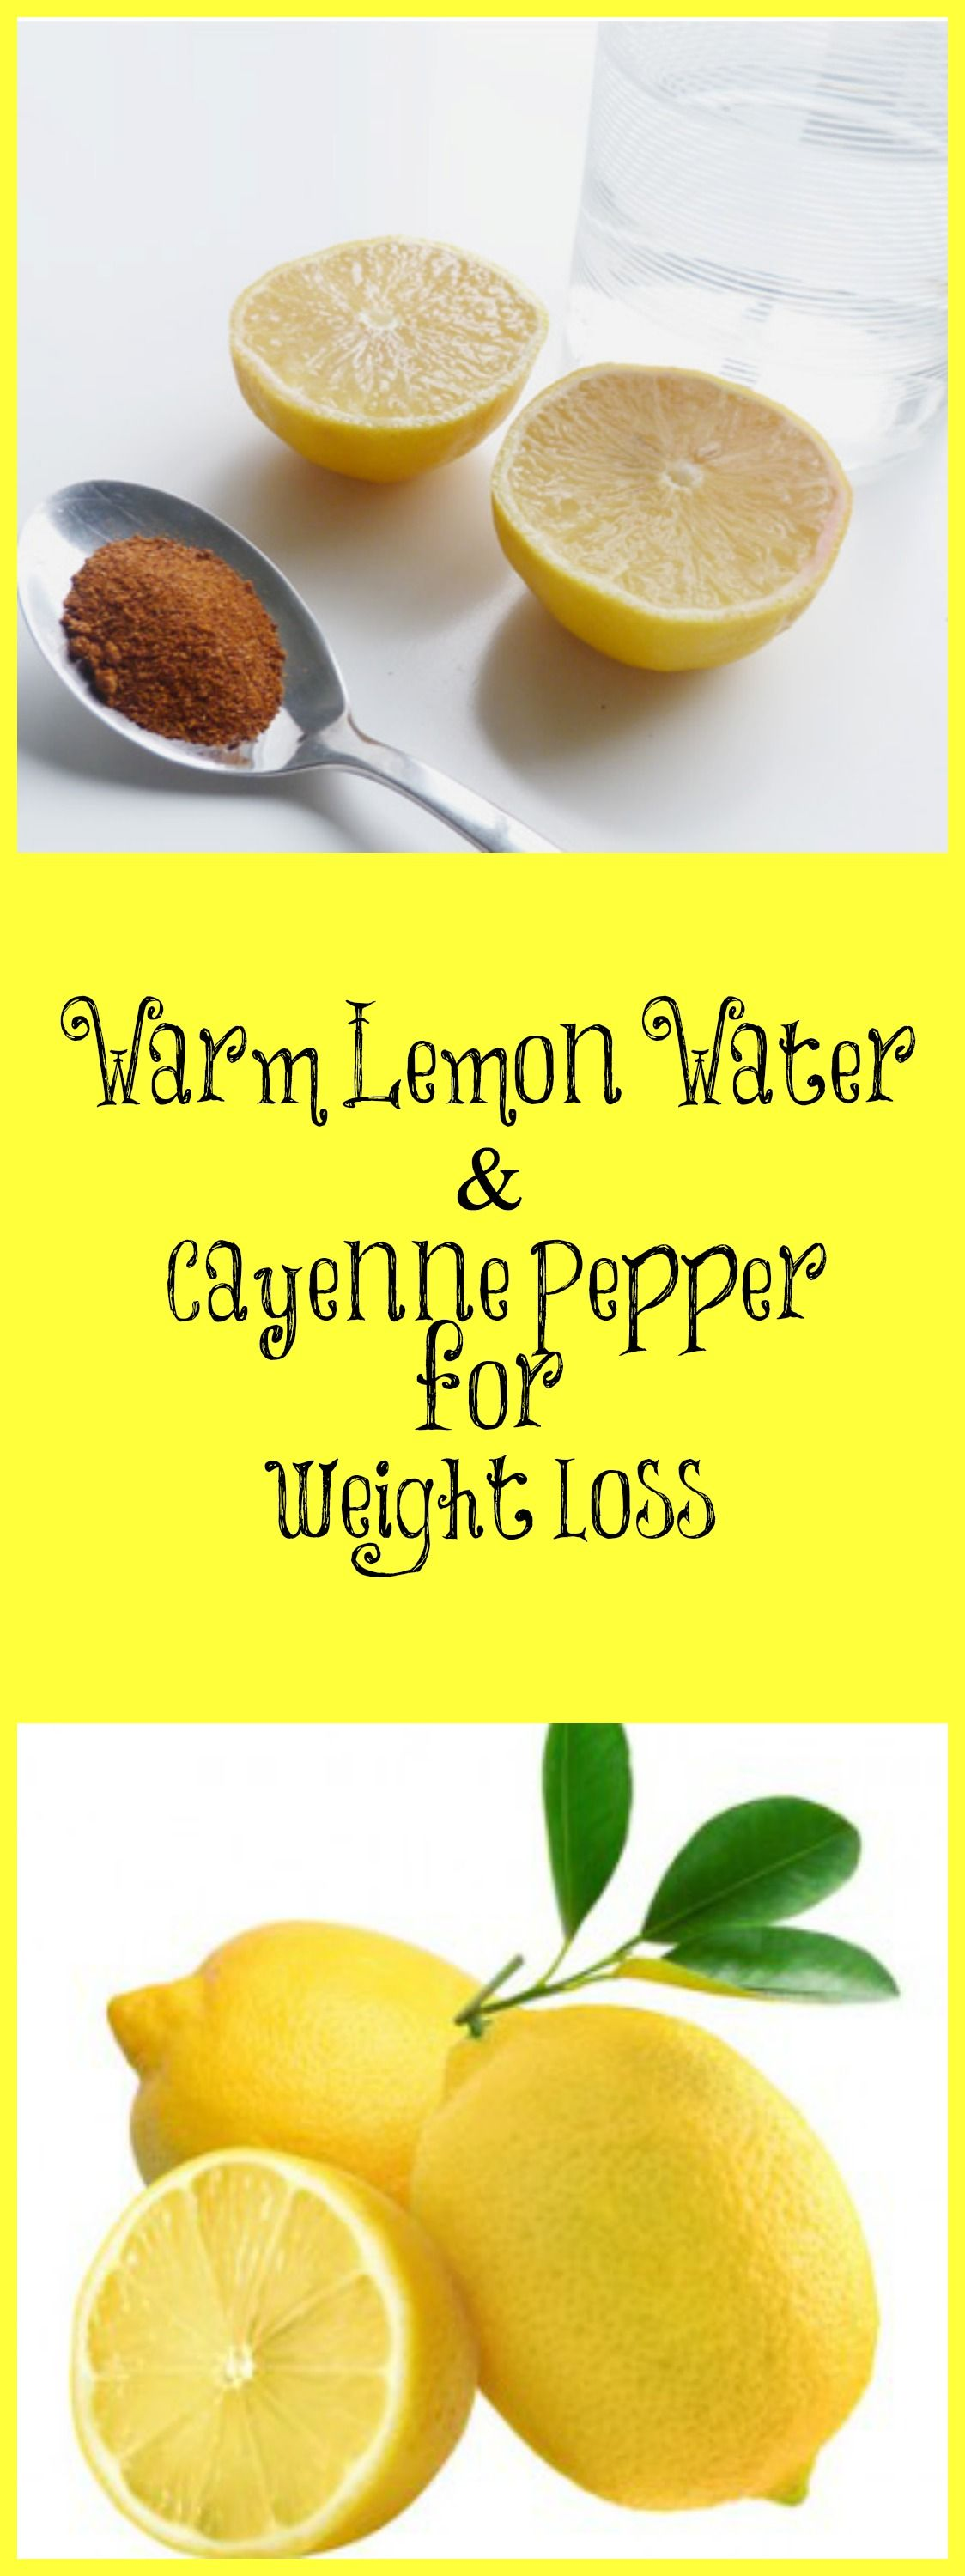 How Warm Lemon Water And Cayenne Pepper Can Help With Weight Loss